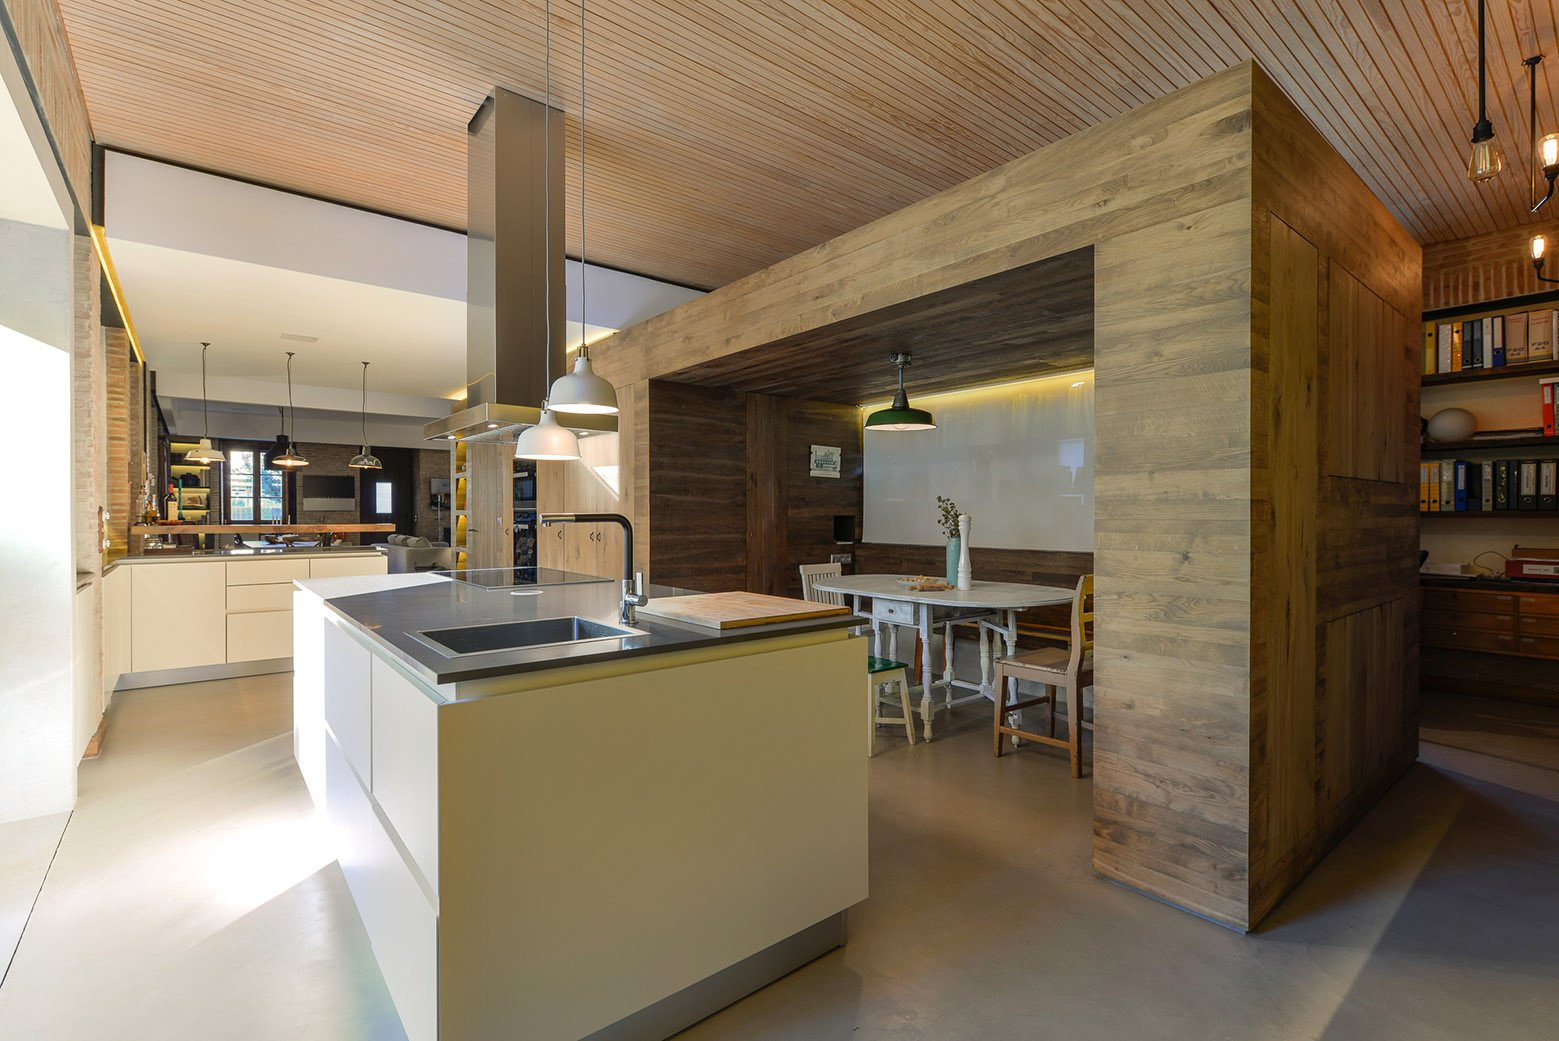 Kitchen, Metal Counter, White Cabinet, Concrete Floor, Pendant Lighting, Cooktops, Drop In Sink, and Range Hood  Photo 10 of 16 in An Architect Renovates His 1920s Home in Portugal, While Preserving the Exterior Shell